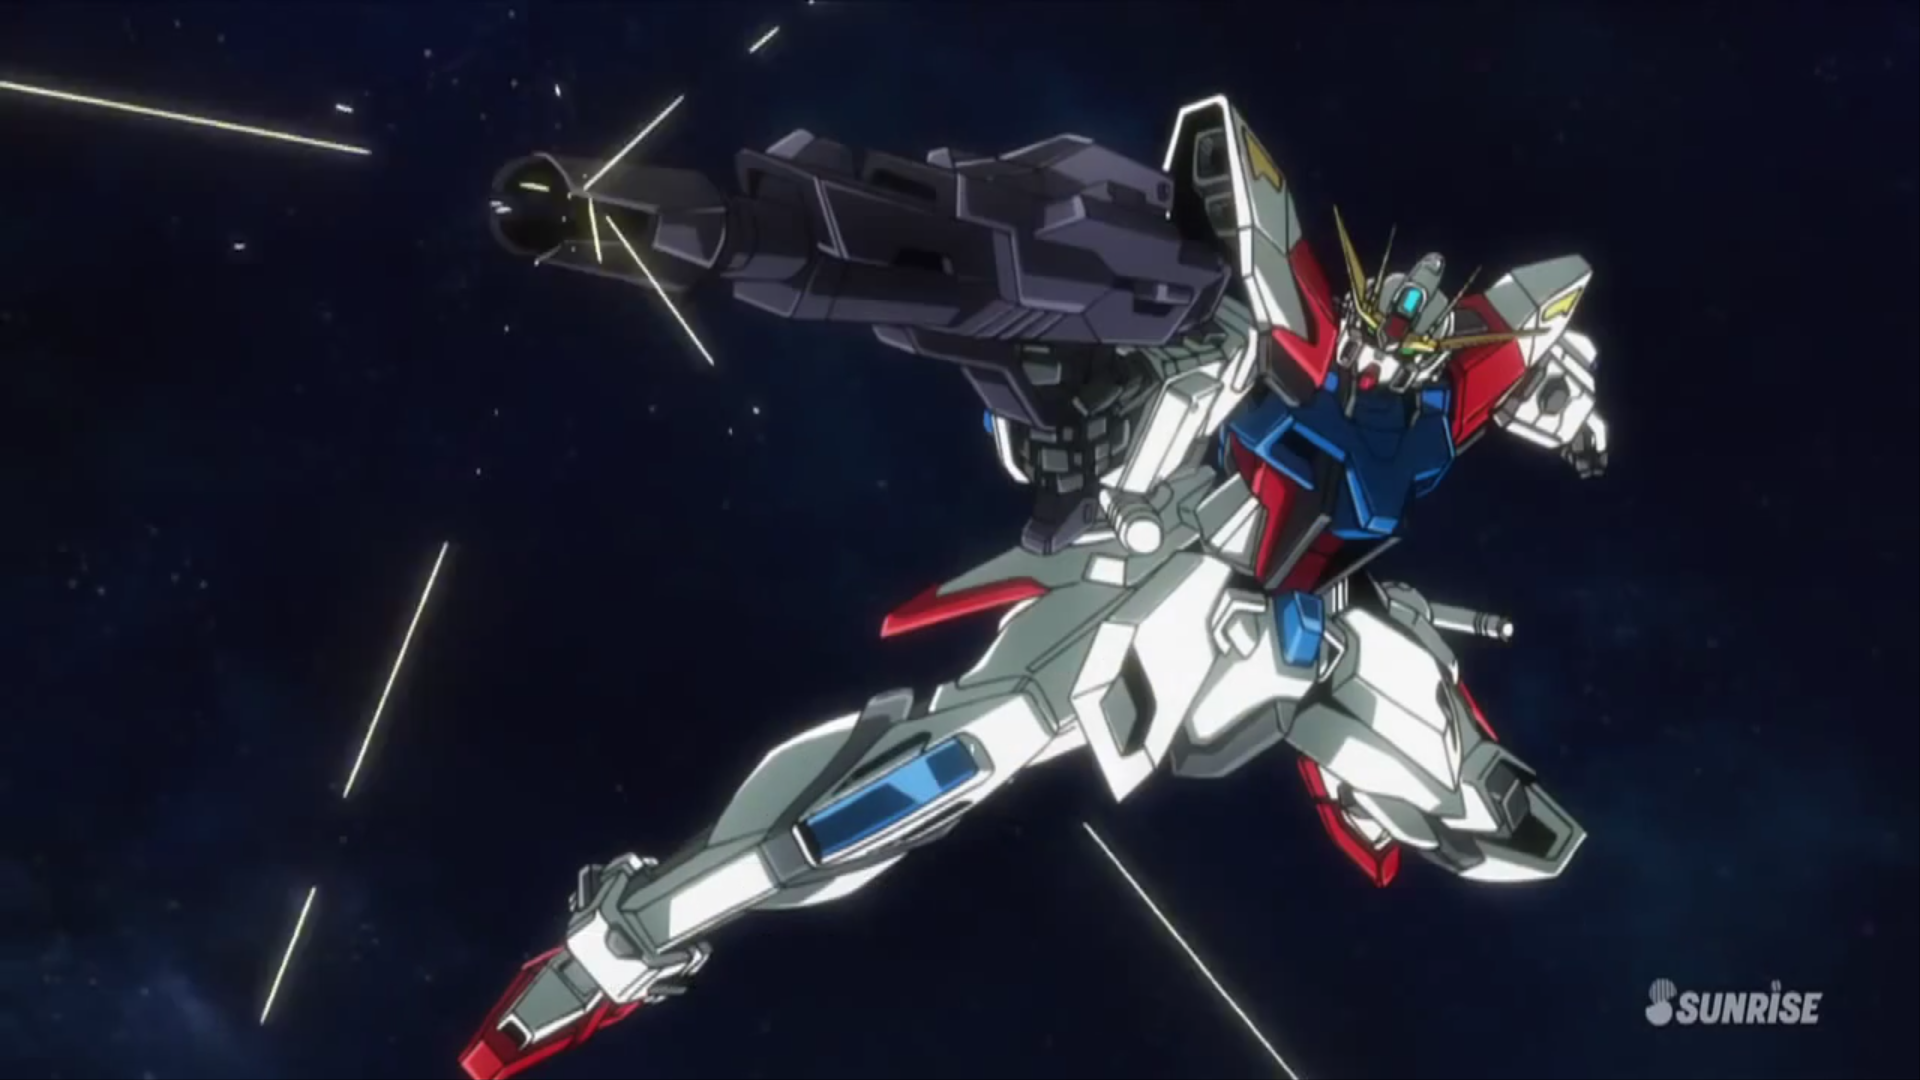 Gundam build fighters 14 background wallpaper for Domon in gundam build fighters